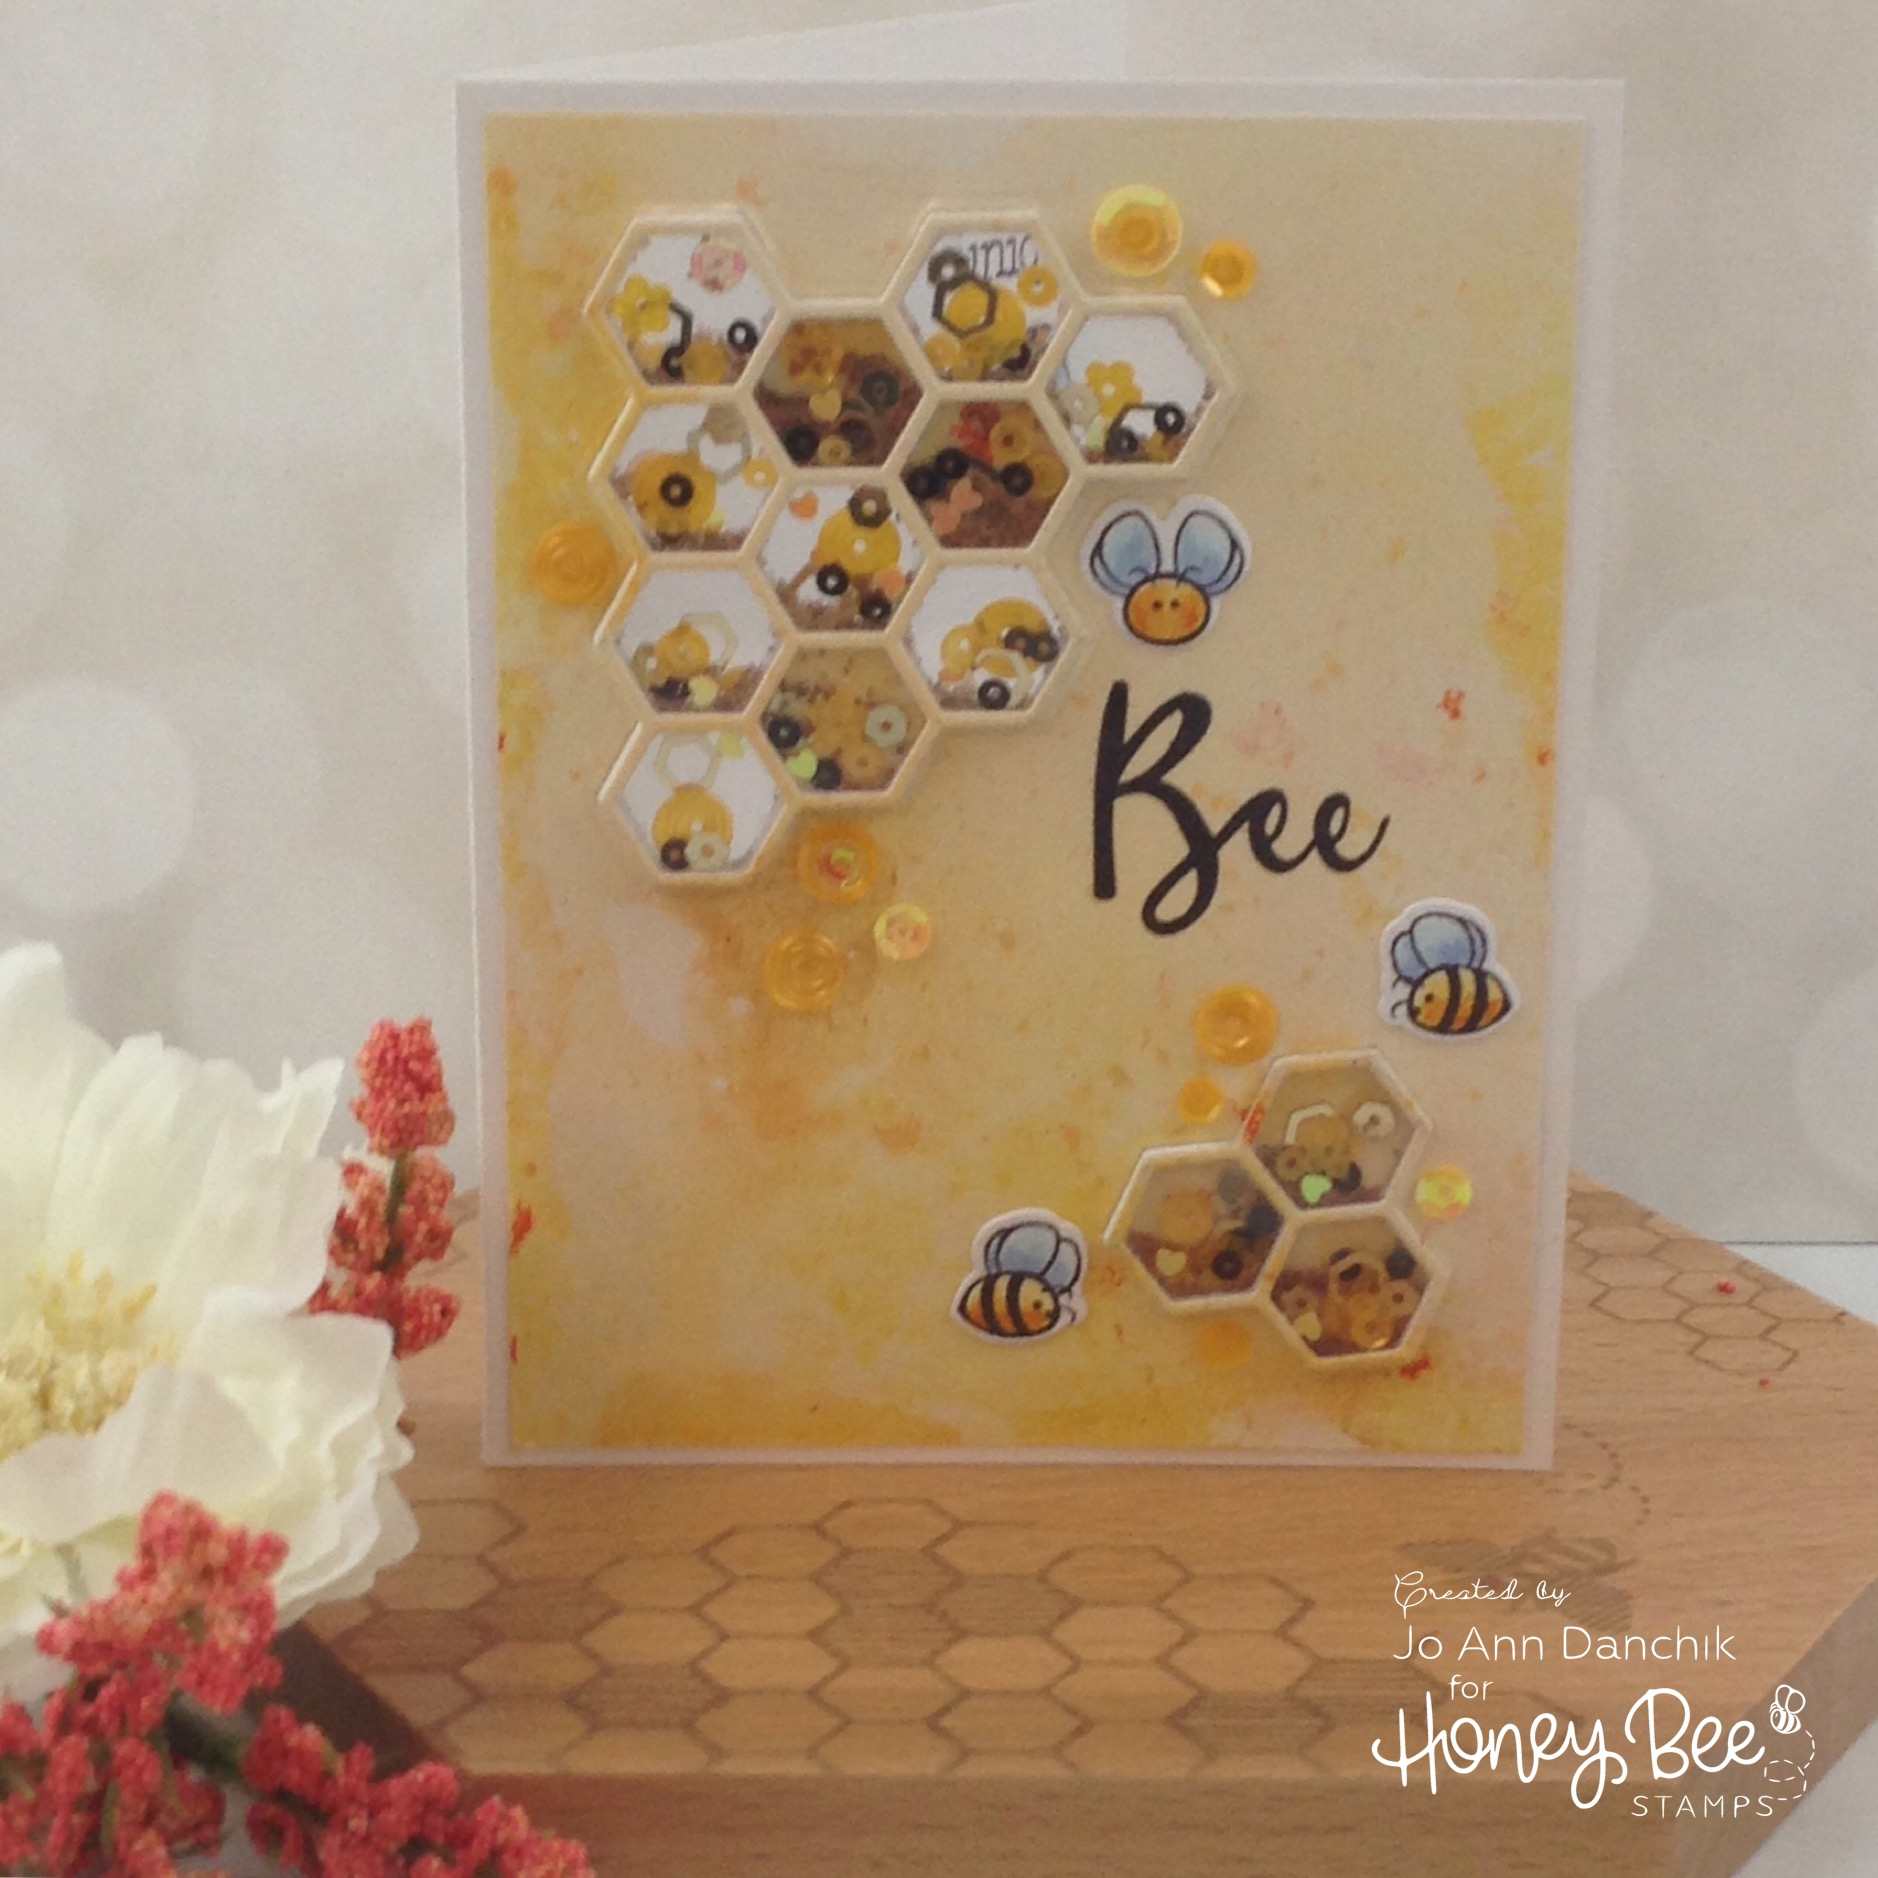 Creative Sundays With Jo Ann: Bee Unique